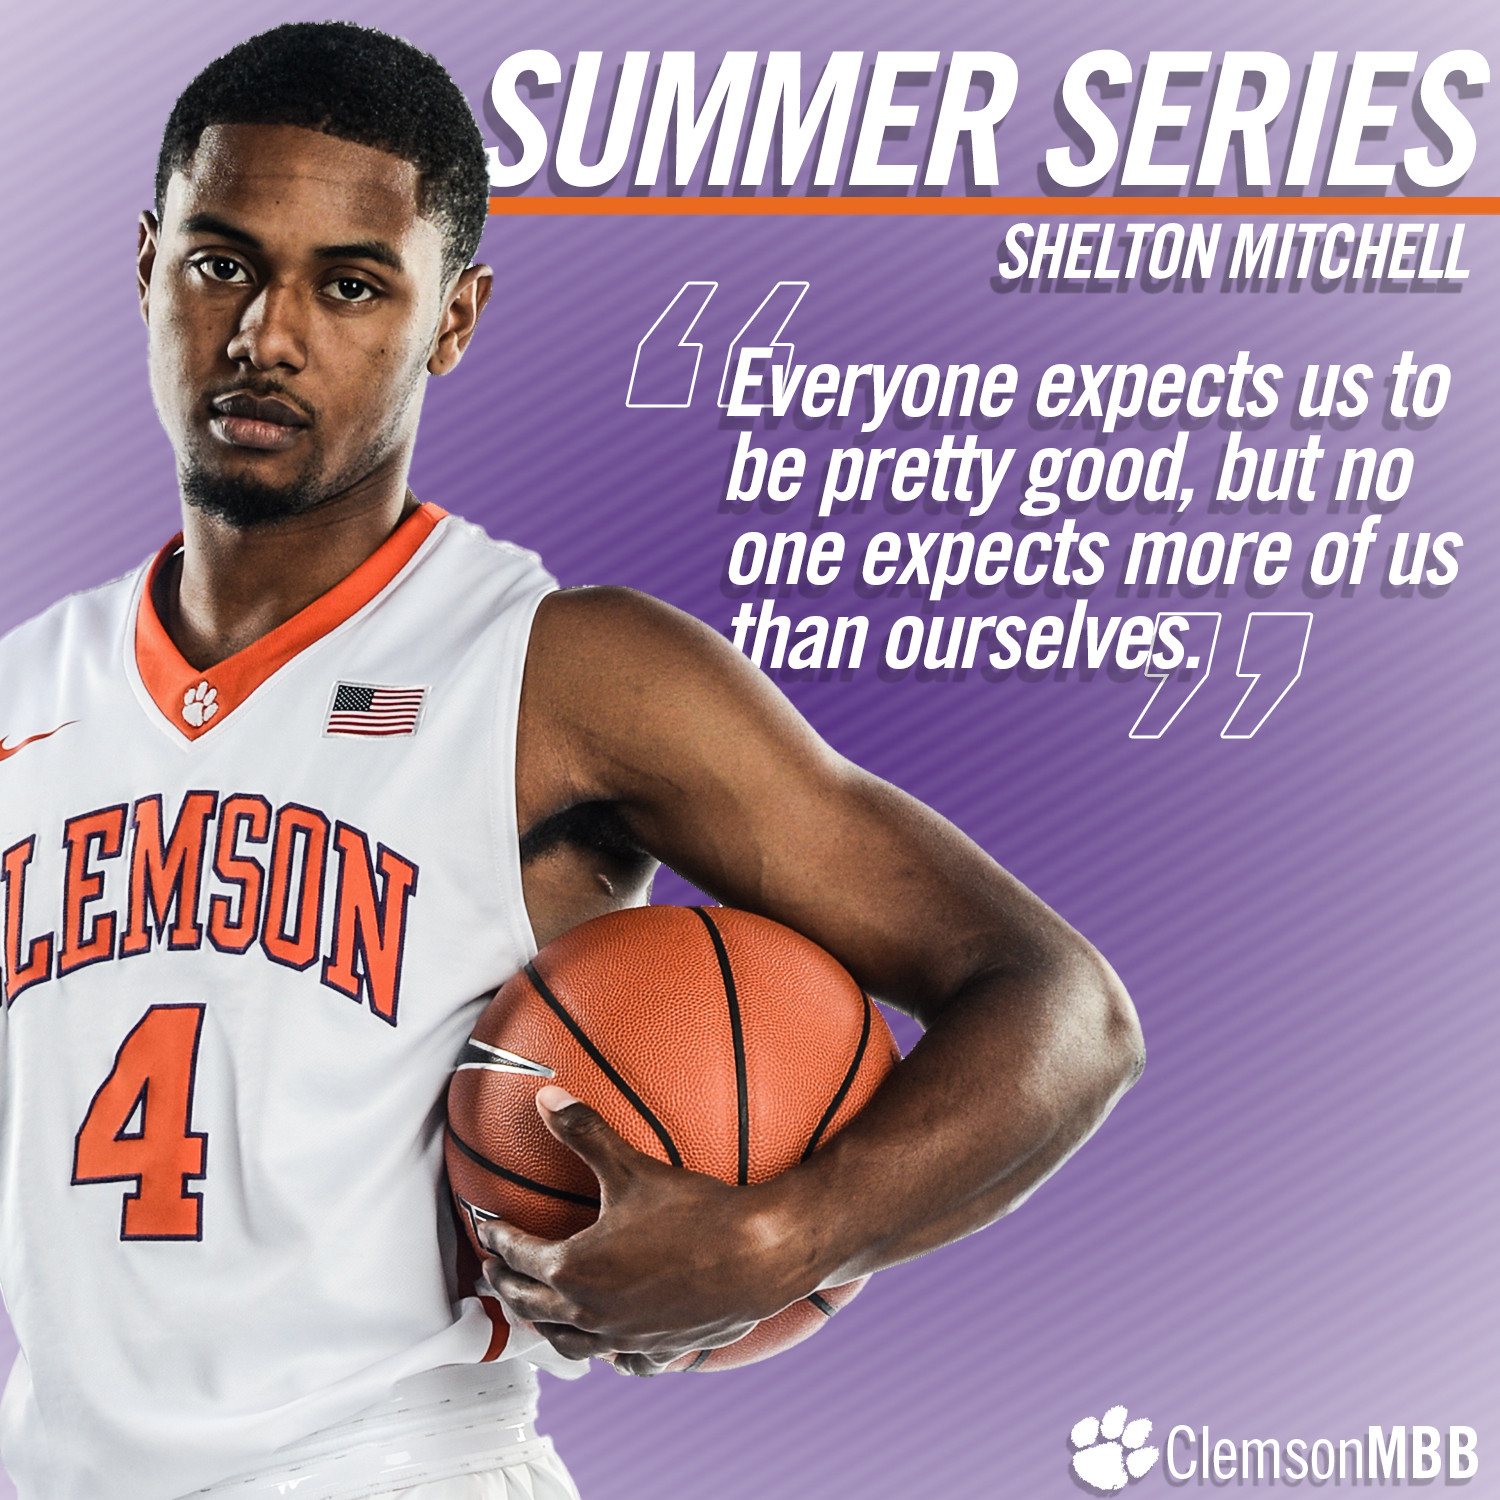 Summer Series: Shelton Mitchell